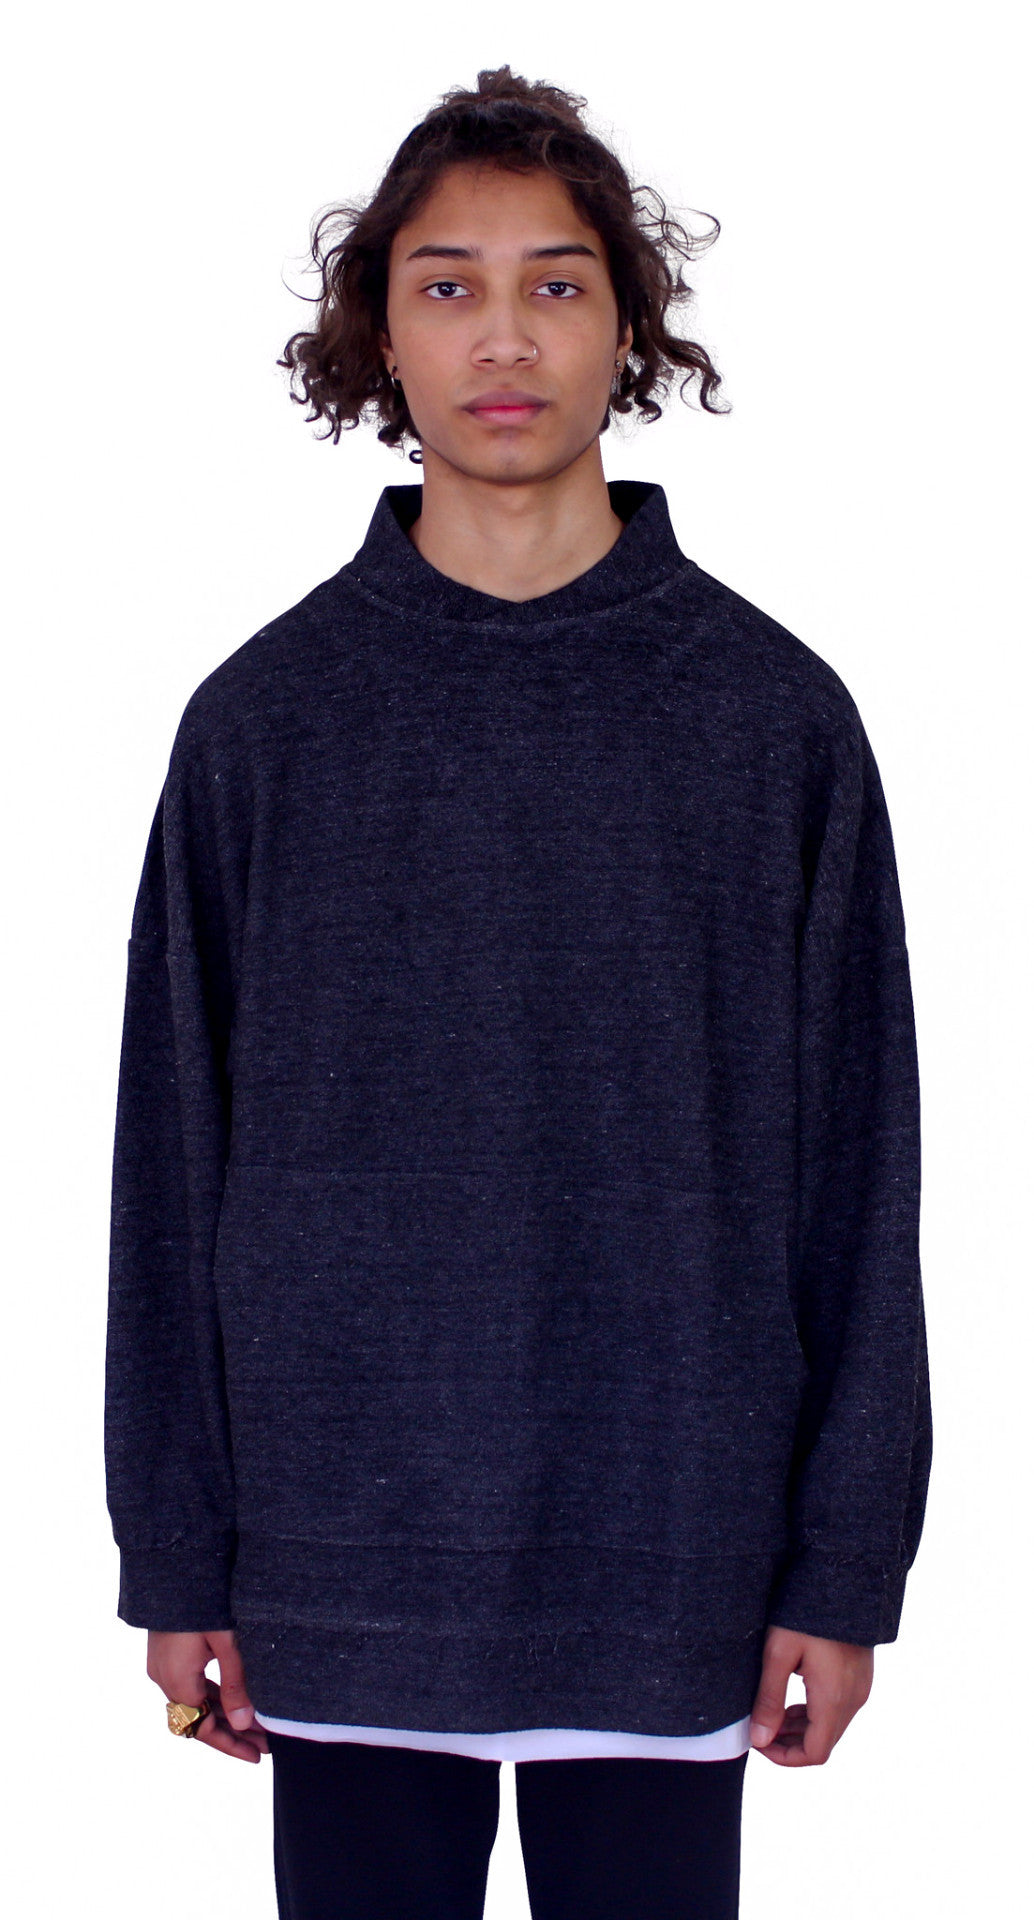 DESTROYED REVERSED PULLOVER - ASH